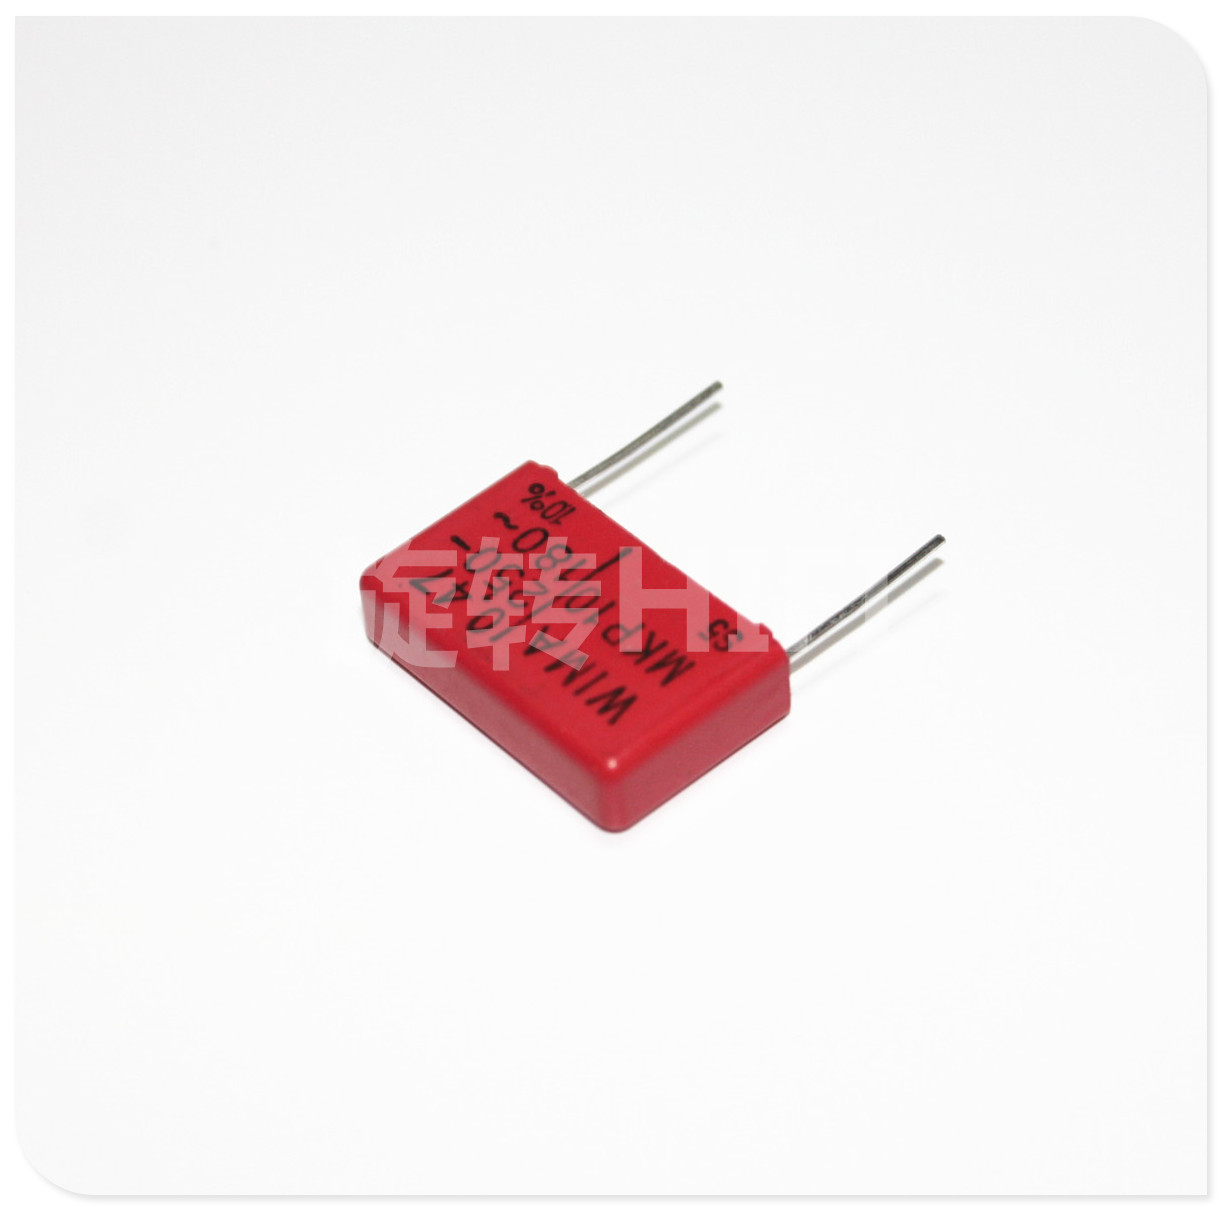 4PCS RED WIMA MKP10 0.47UF 250V P22.5mm Original New MKP-10 474/250V Audio 470nf Film 474 PCM22.5 Hot Sale 0.47uf/250v